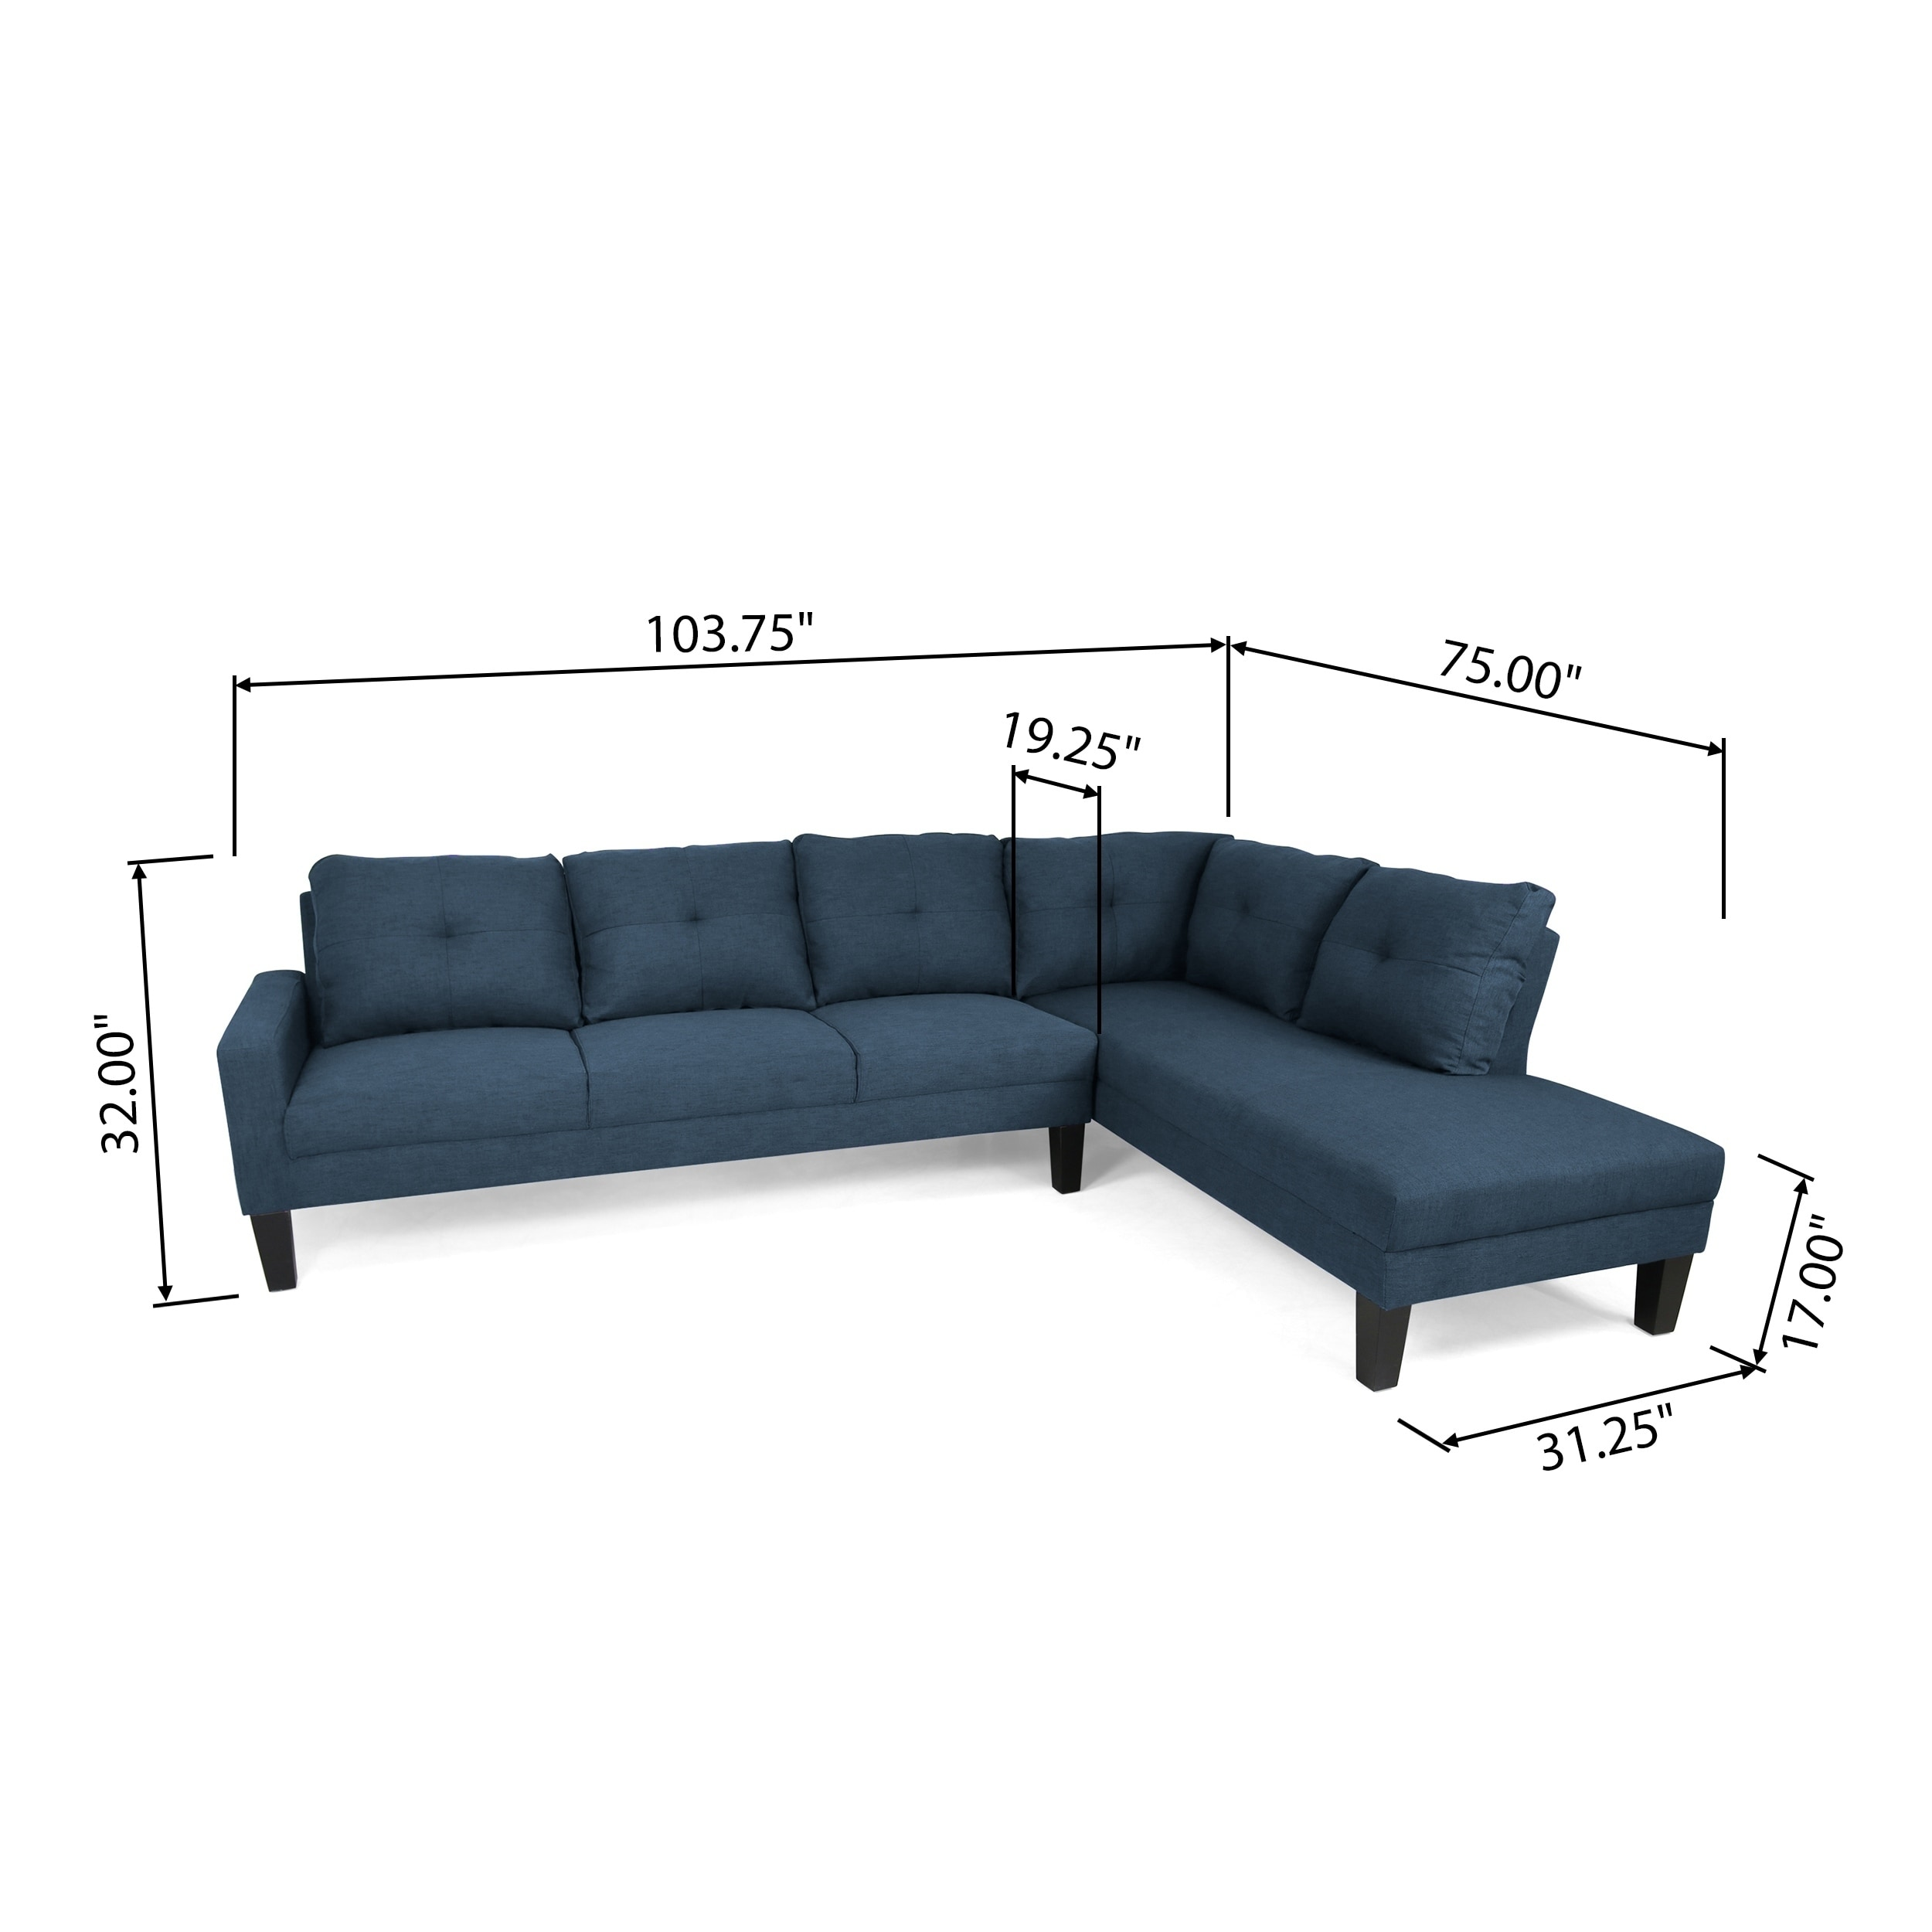 Stupendous Fenmore Modern Fabric Chaise Sectional By Christopher Knight Home Squirreltailoven Fun Painted Chair Ideas Images Squirreltailovenorg